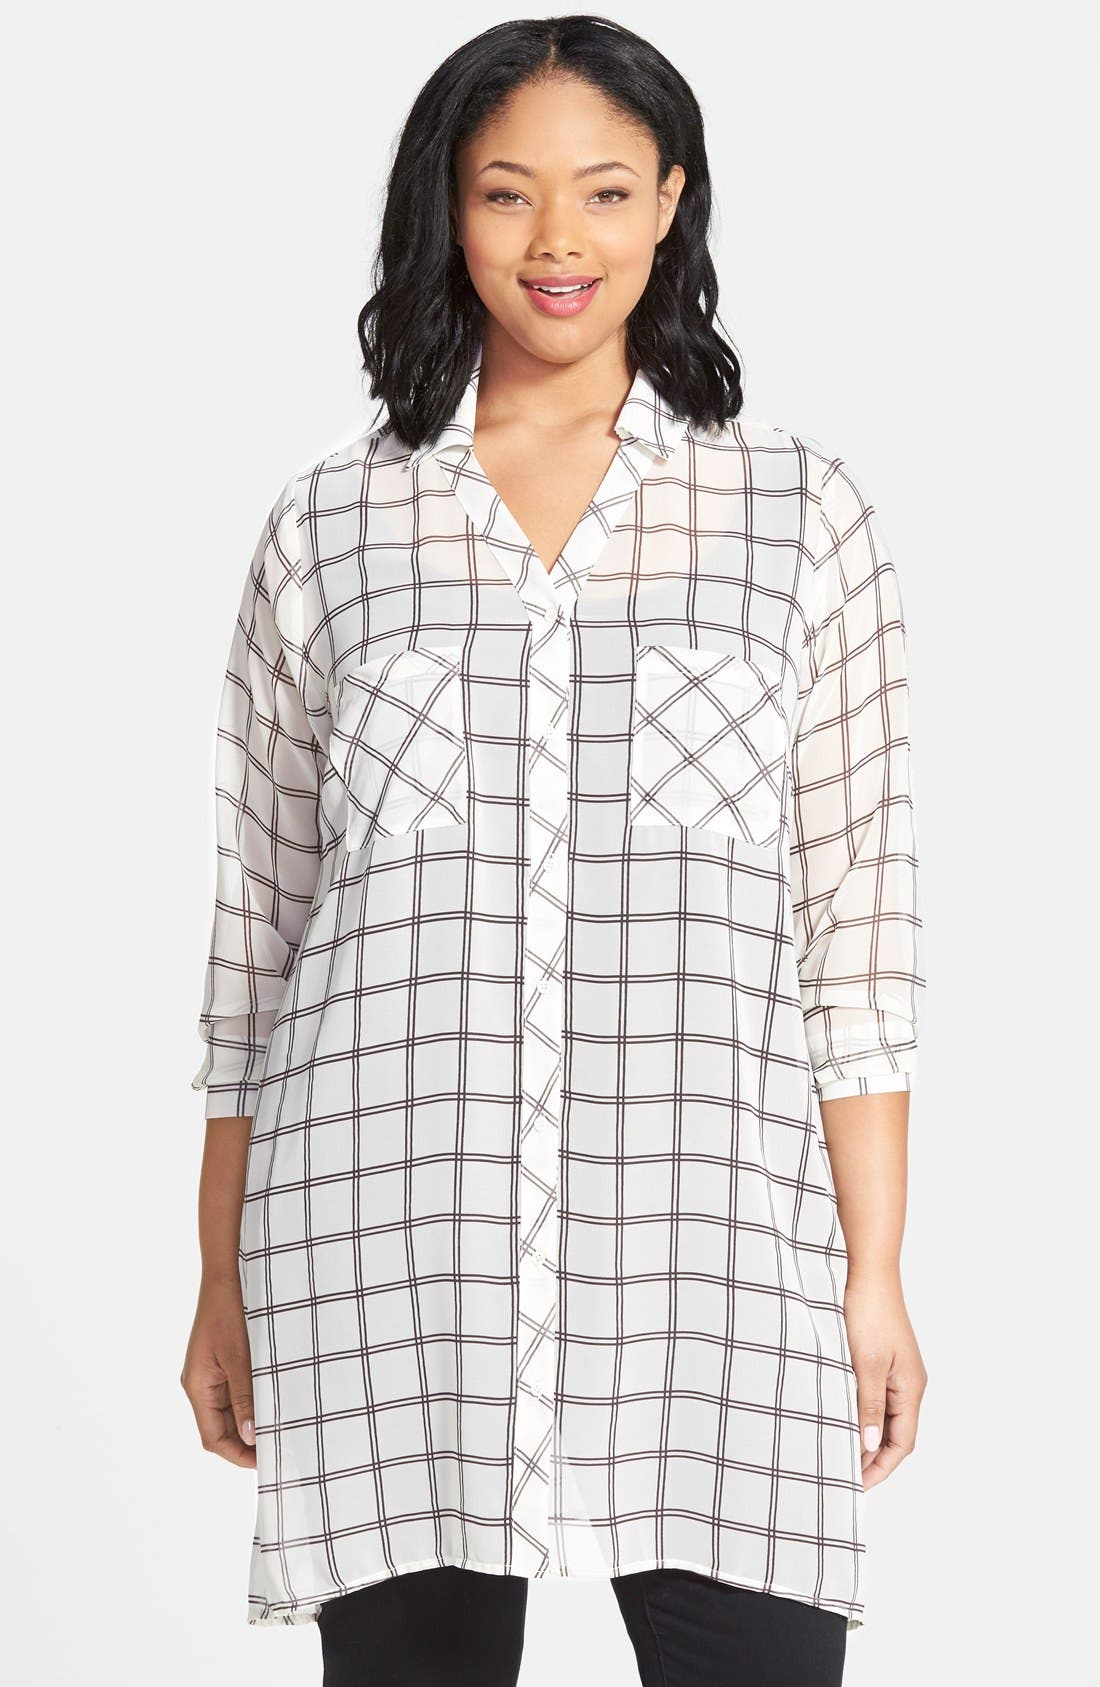 Alternate Image 1 Selected - Pleione Plaid Chiffon Tunic (Plus Size)